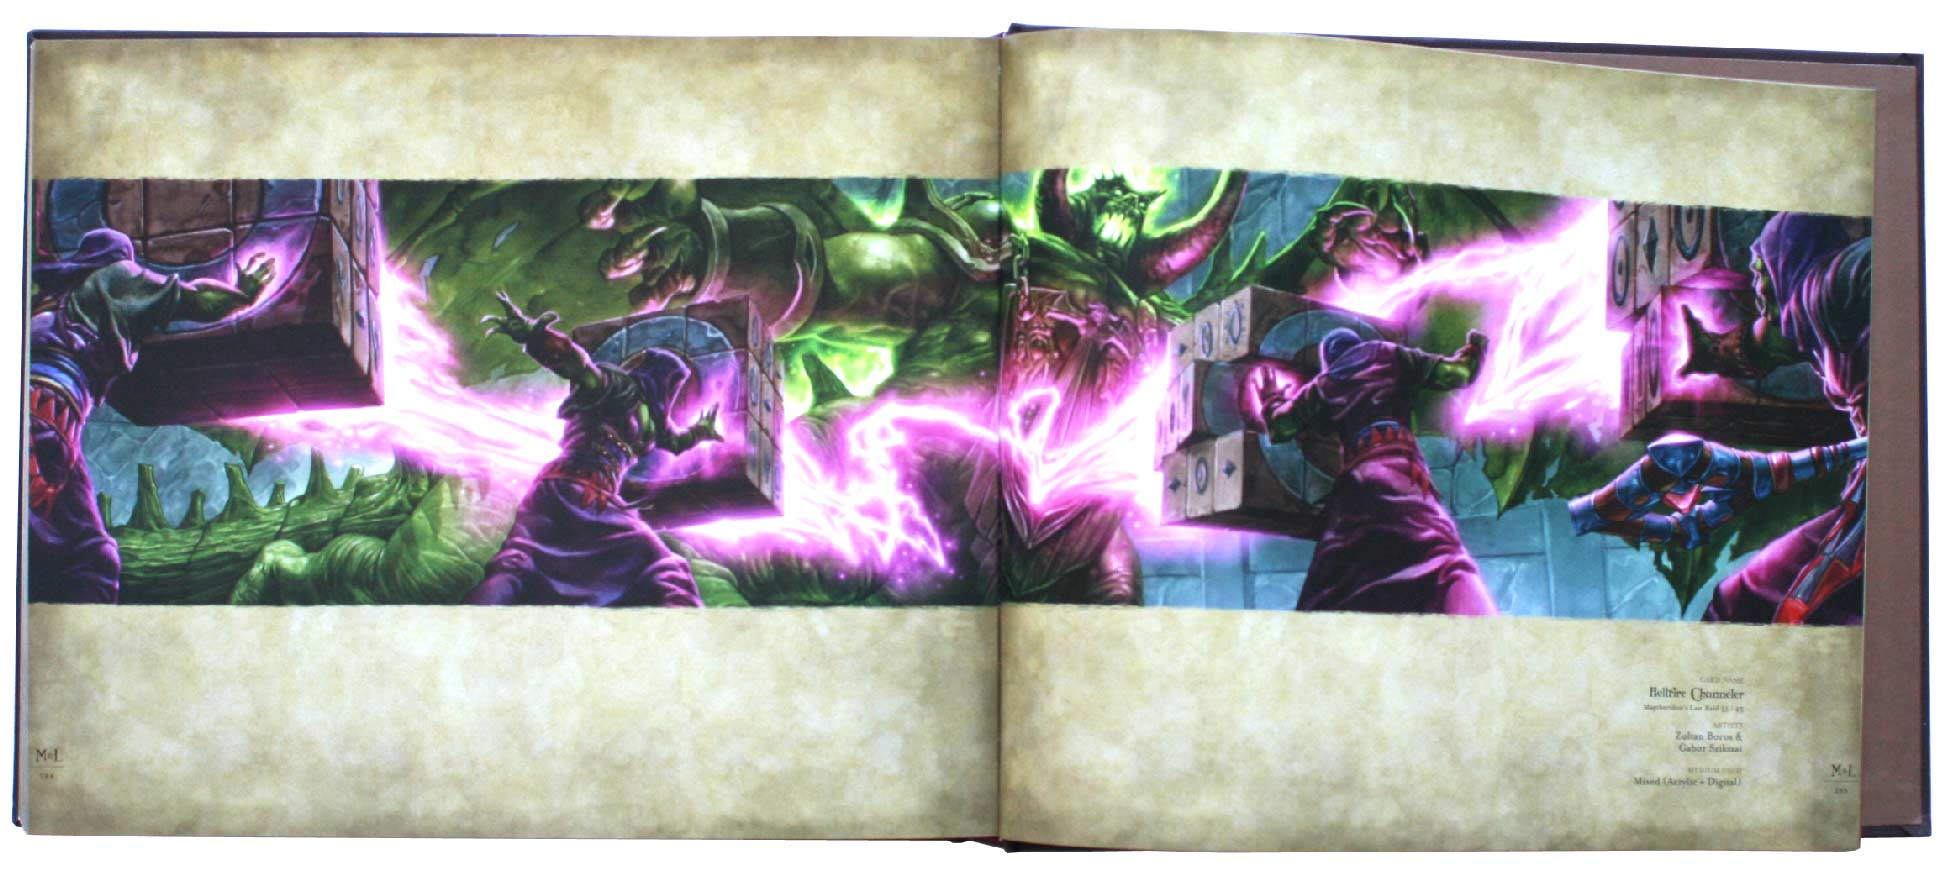 page 284 et 285 de l'art book : The Art of the Trading Card Game (World of Wacraft)